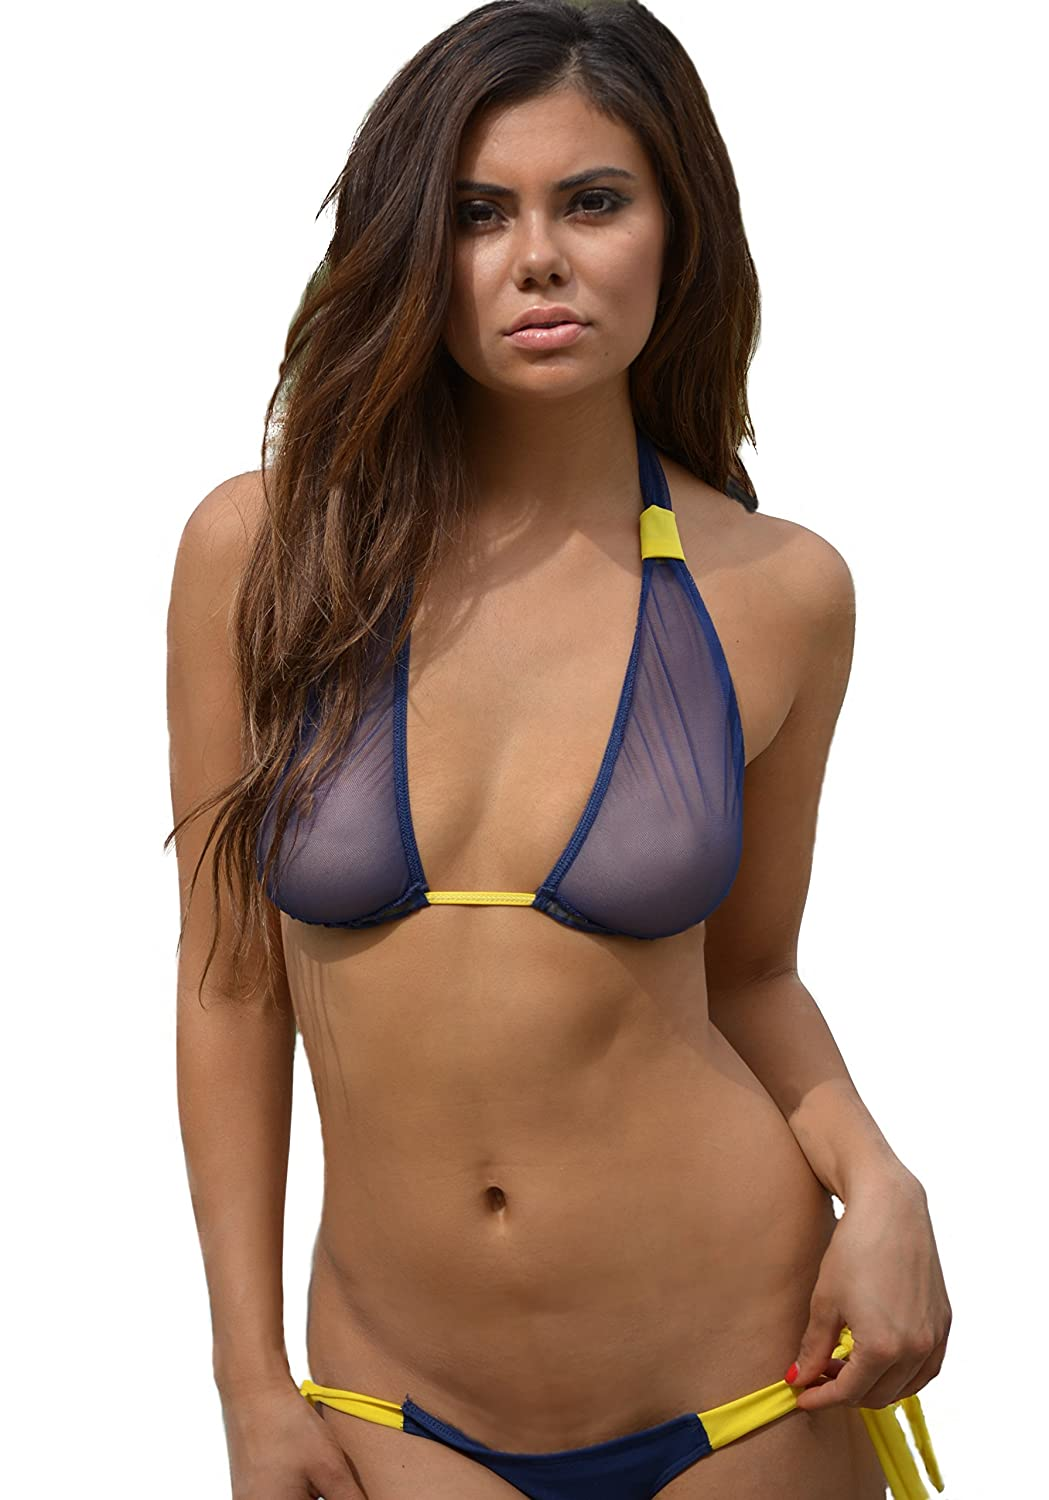 05451e0f70de3 Amazon.com: Floral Paradise Mesh Bikini Halter Top Navy Blue: Clothing